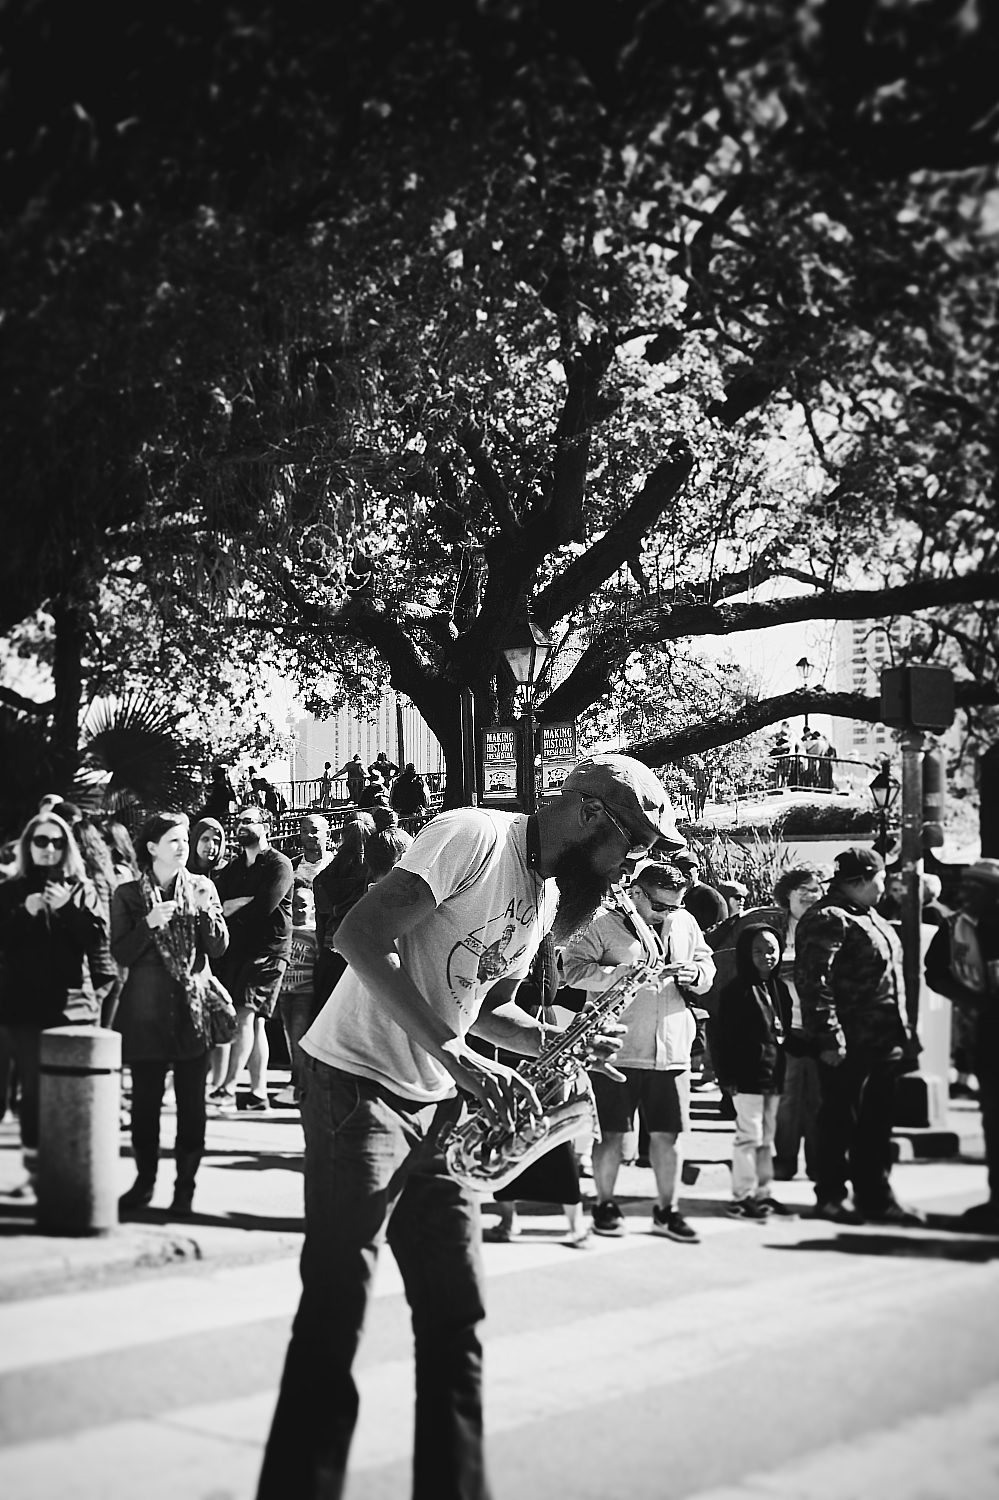 Music is an important part of culture in New Orleans. This musician is playing with his band in front of the Cafe du Monde in French Market.